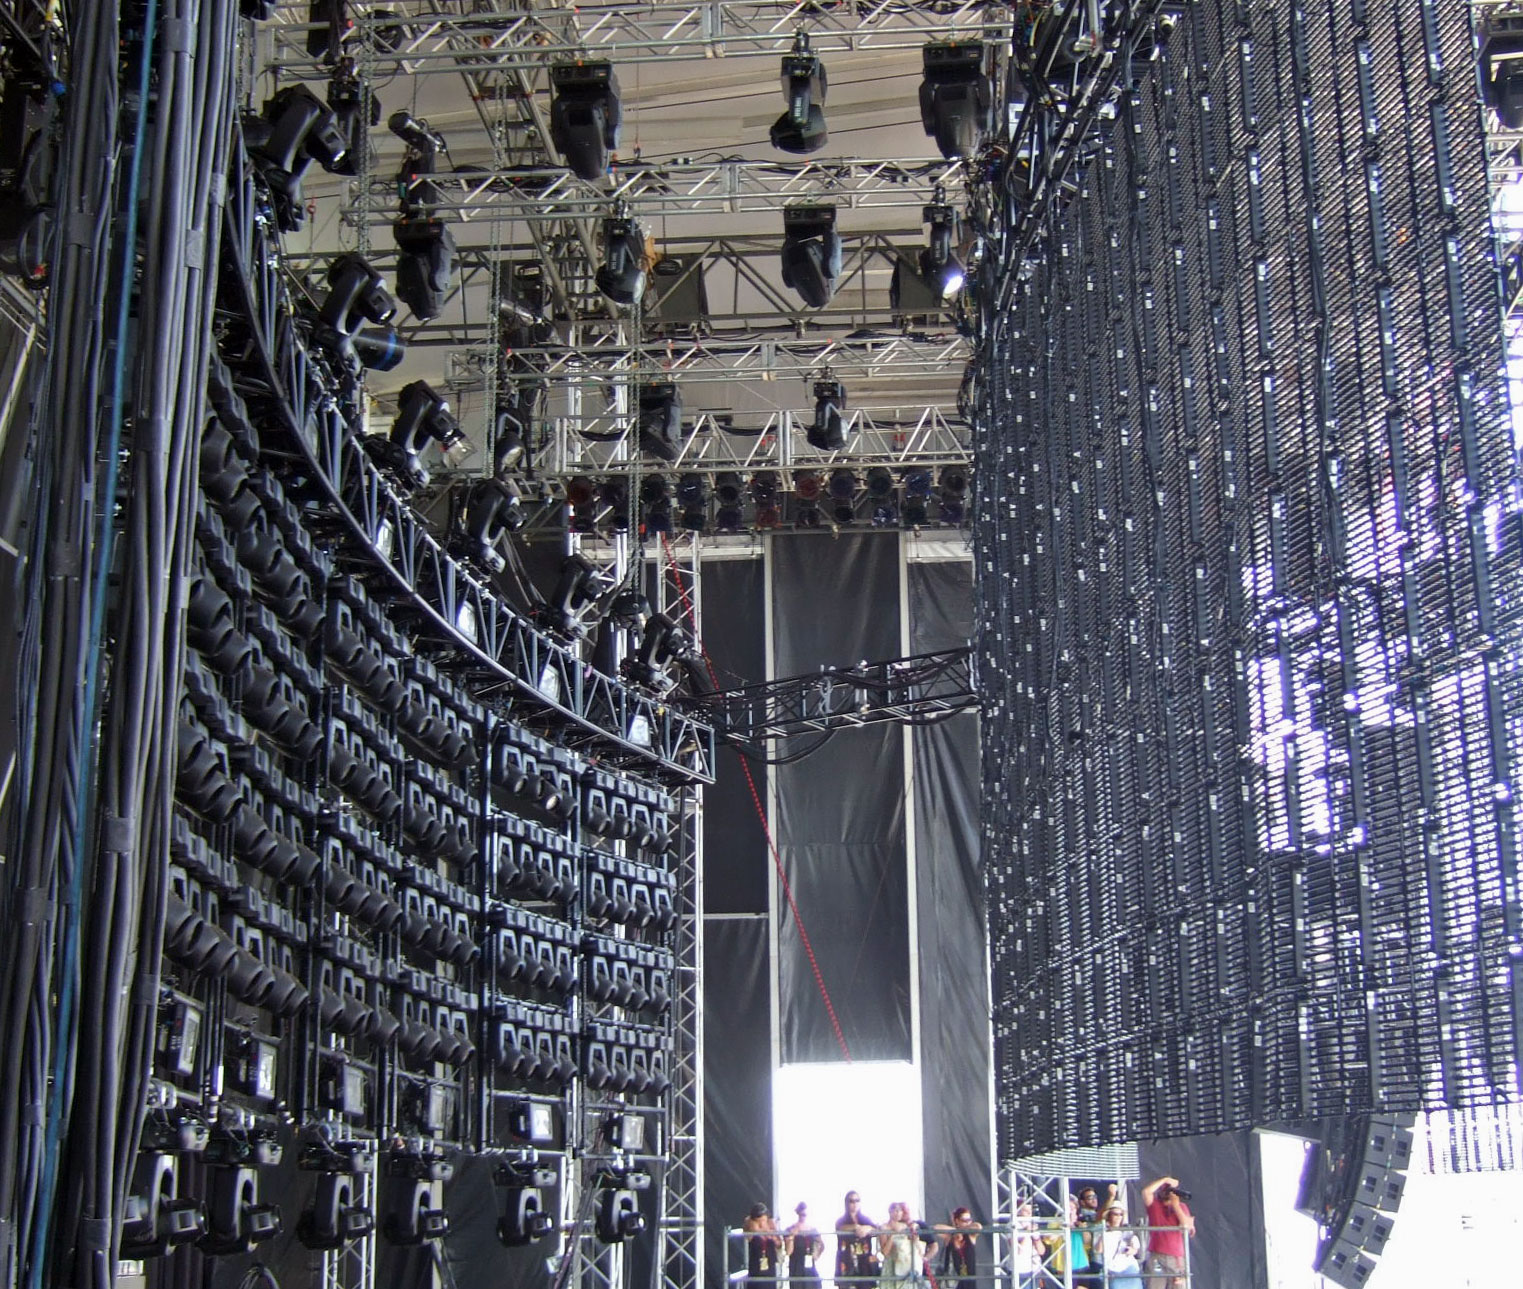 Technicien du spectacle le rigging un métier indispensable